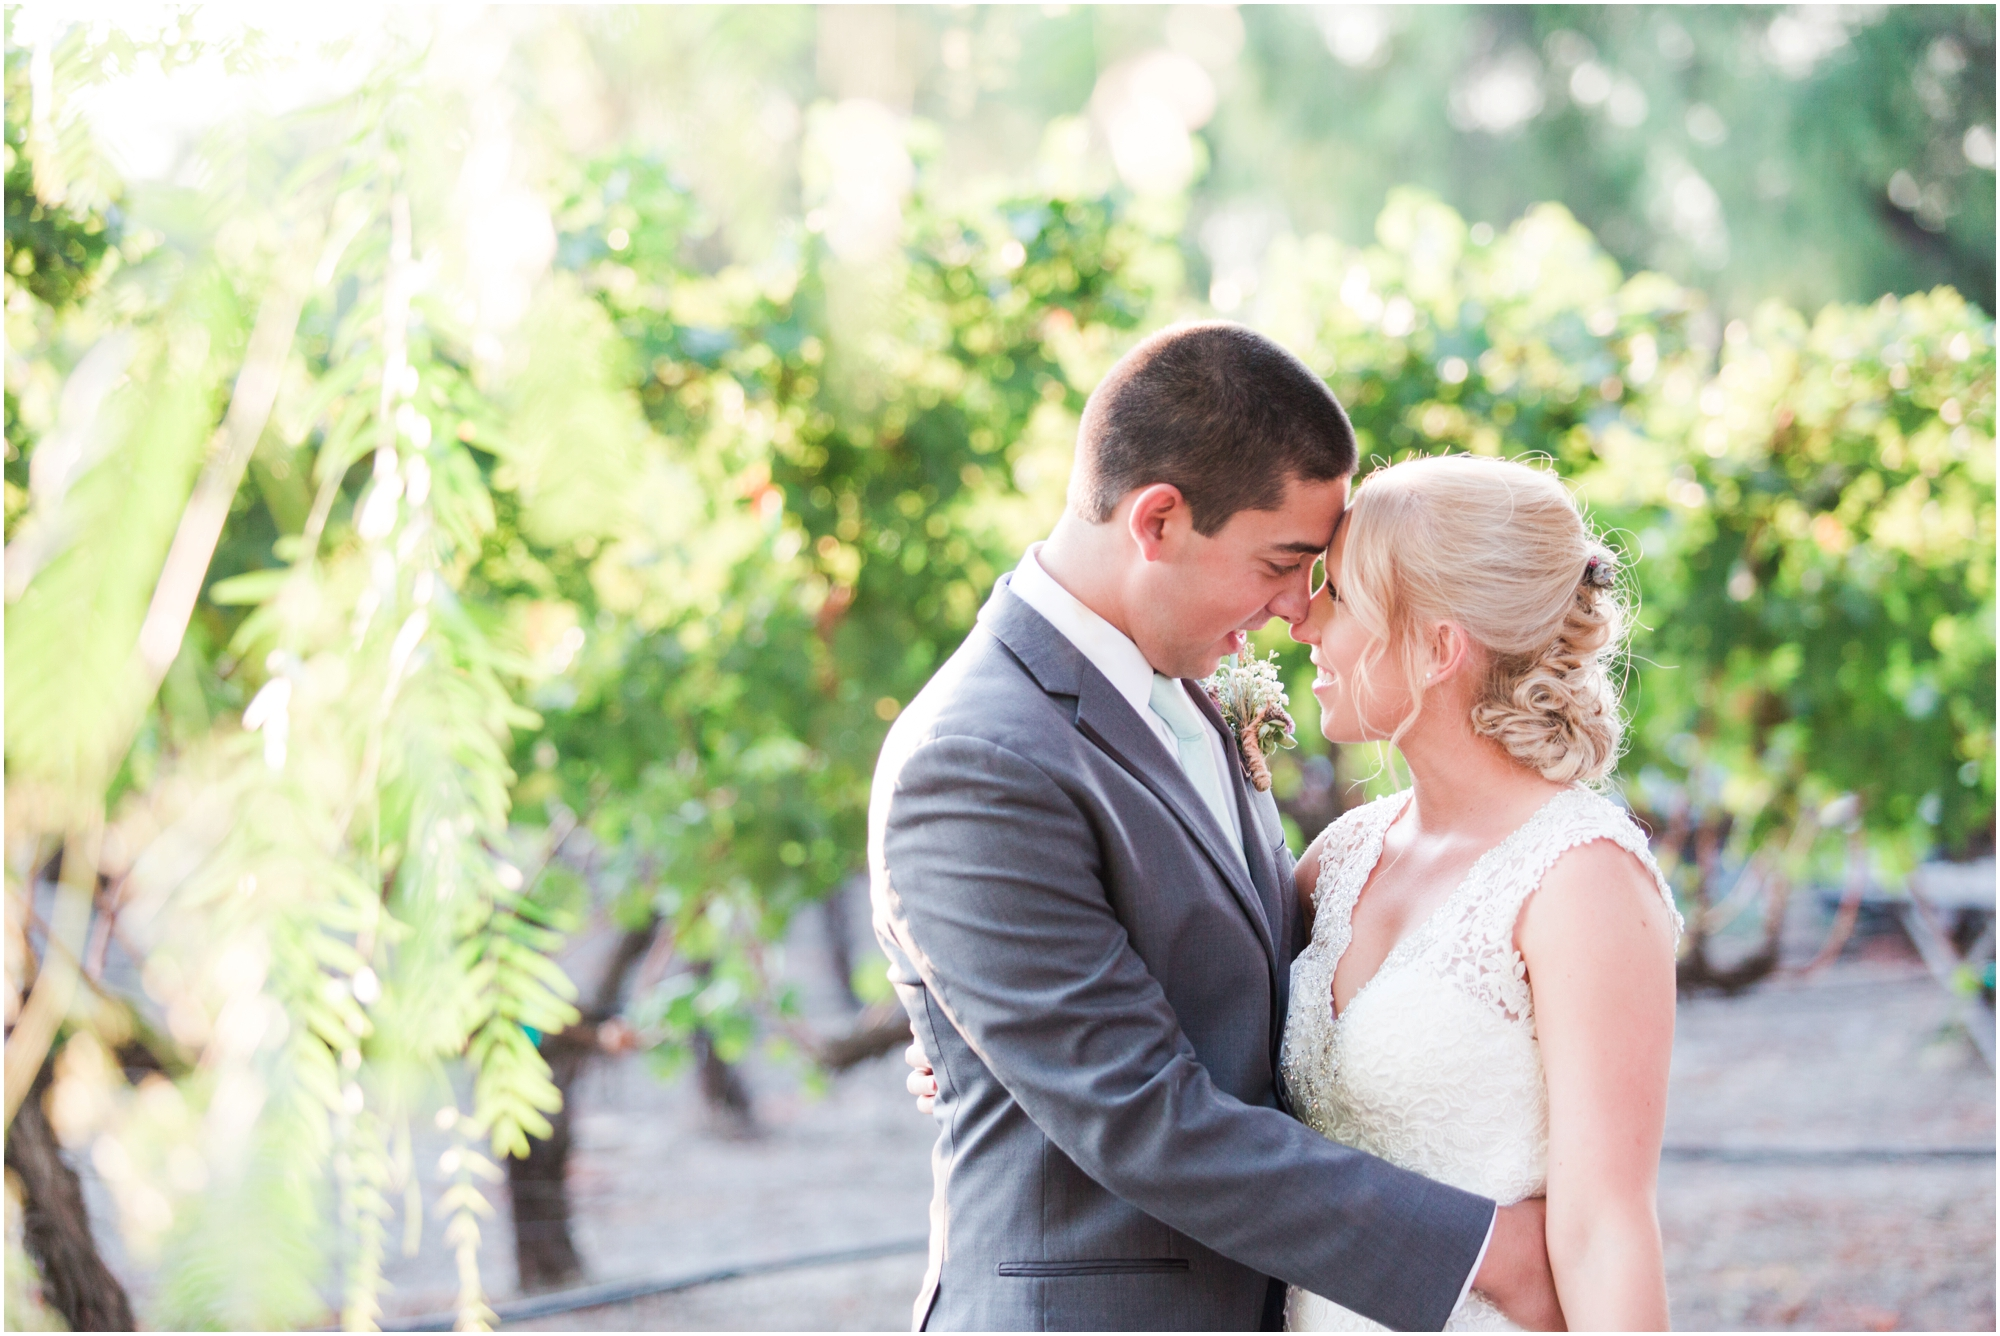 Retzlaff Winery wedding pictures by Briana Calderon Photography_2325.jpg